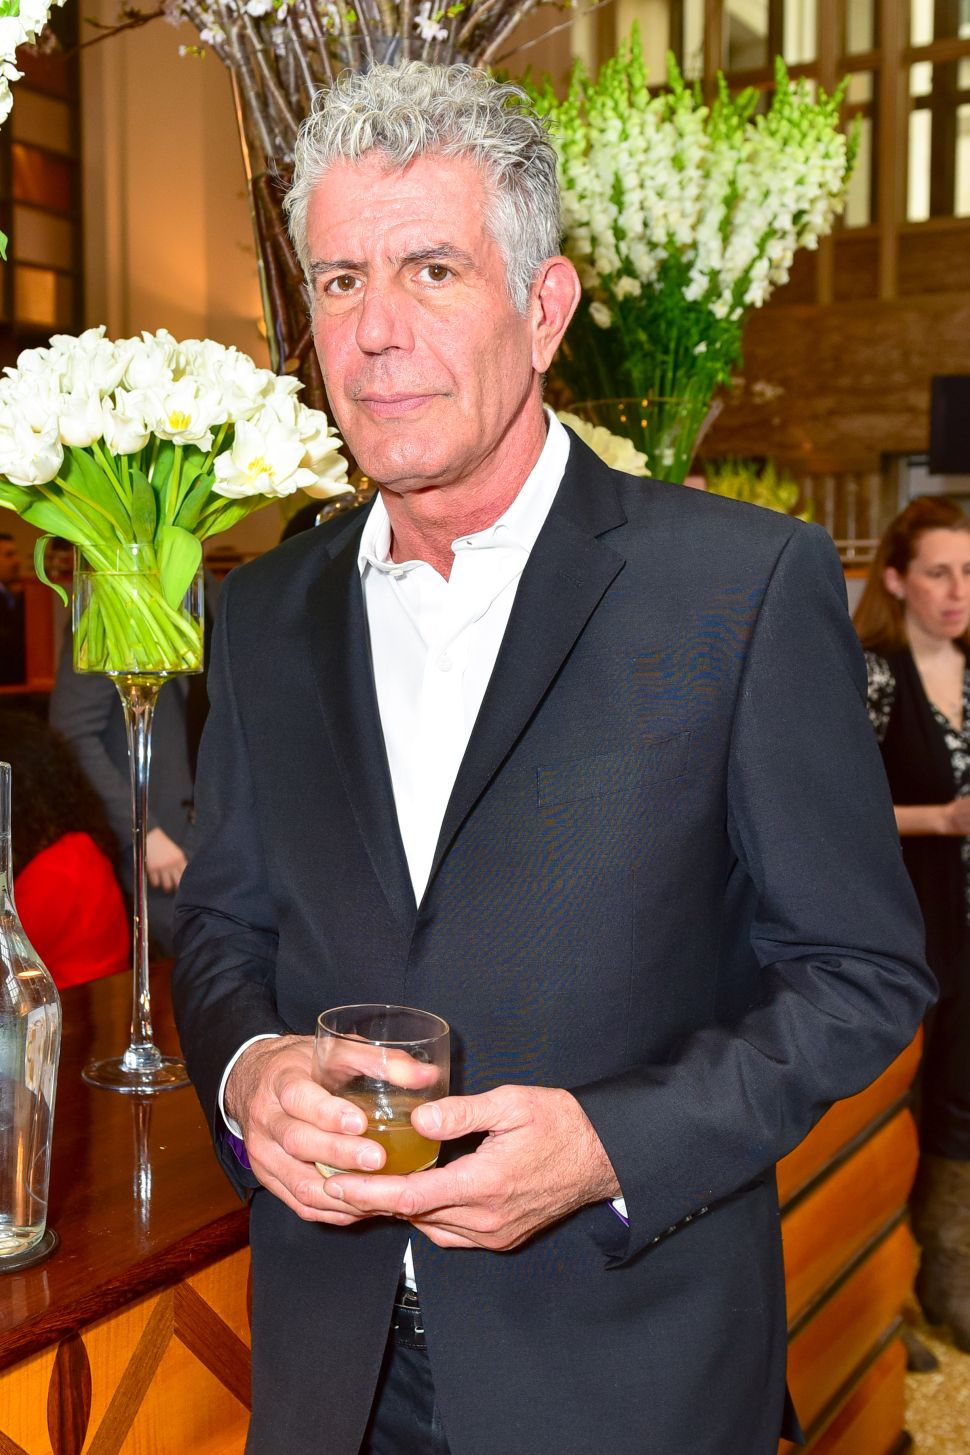 Exclusive: Anthony Bourdain Talks Whisky, Origami & Benito Mussolini